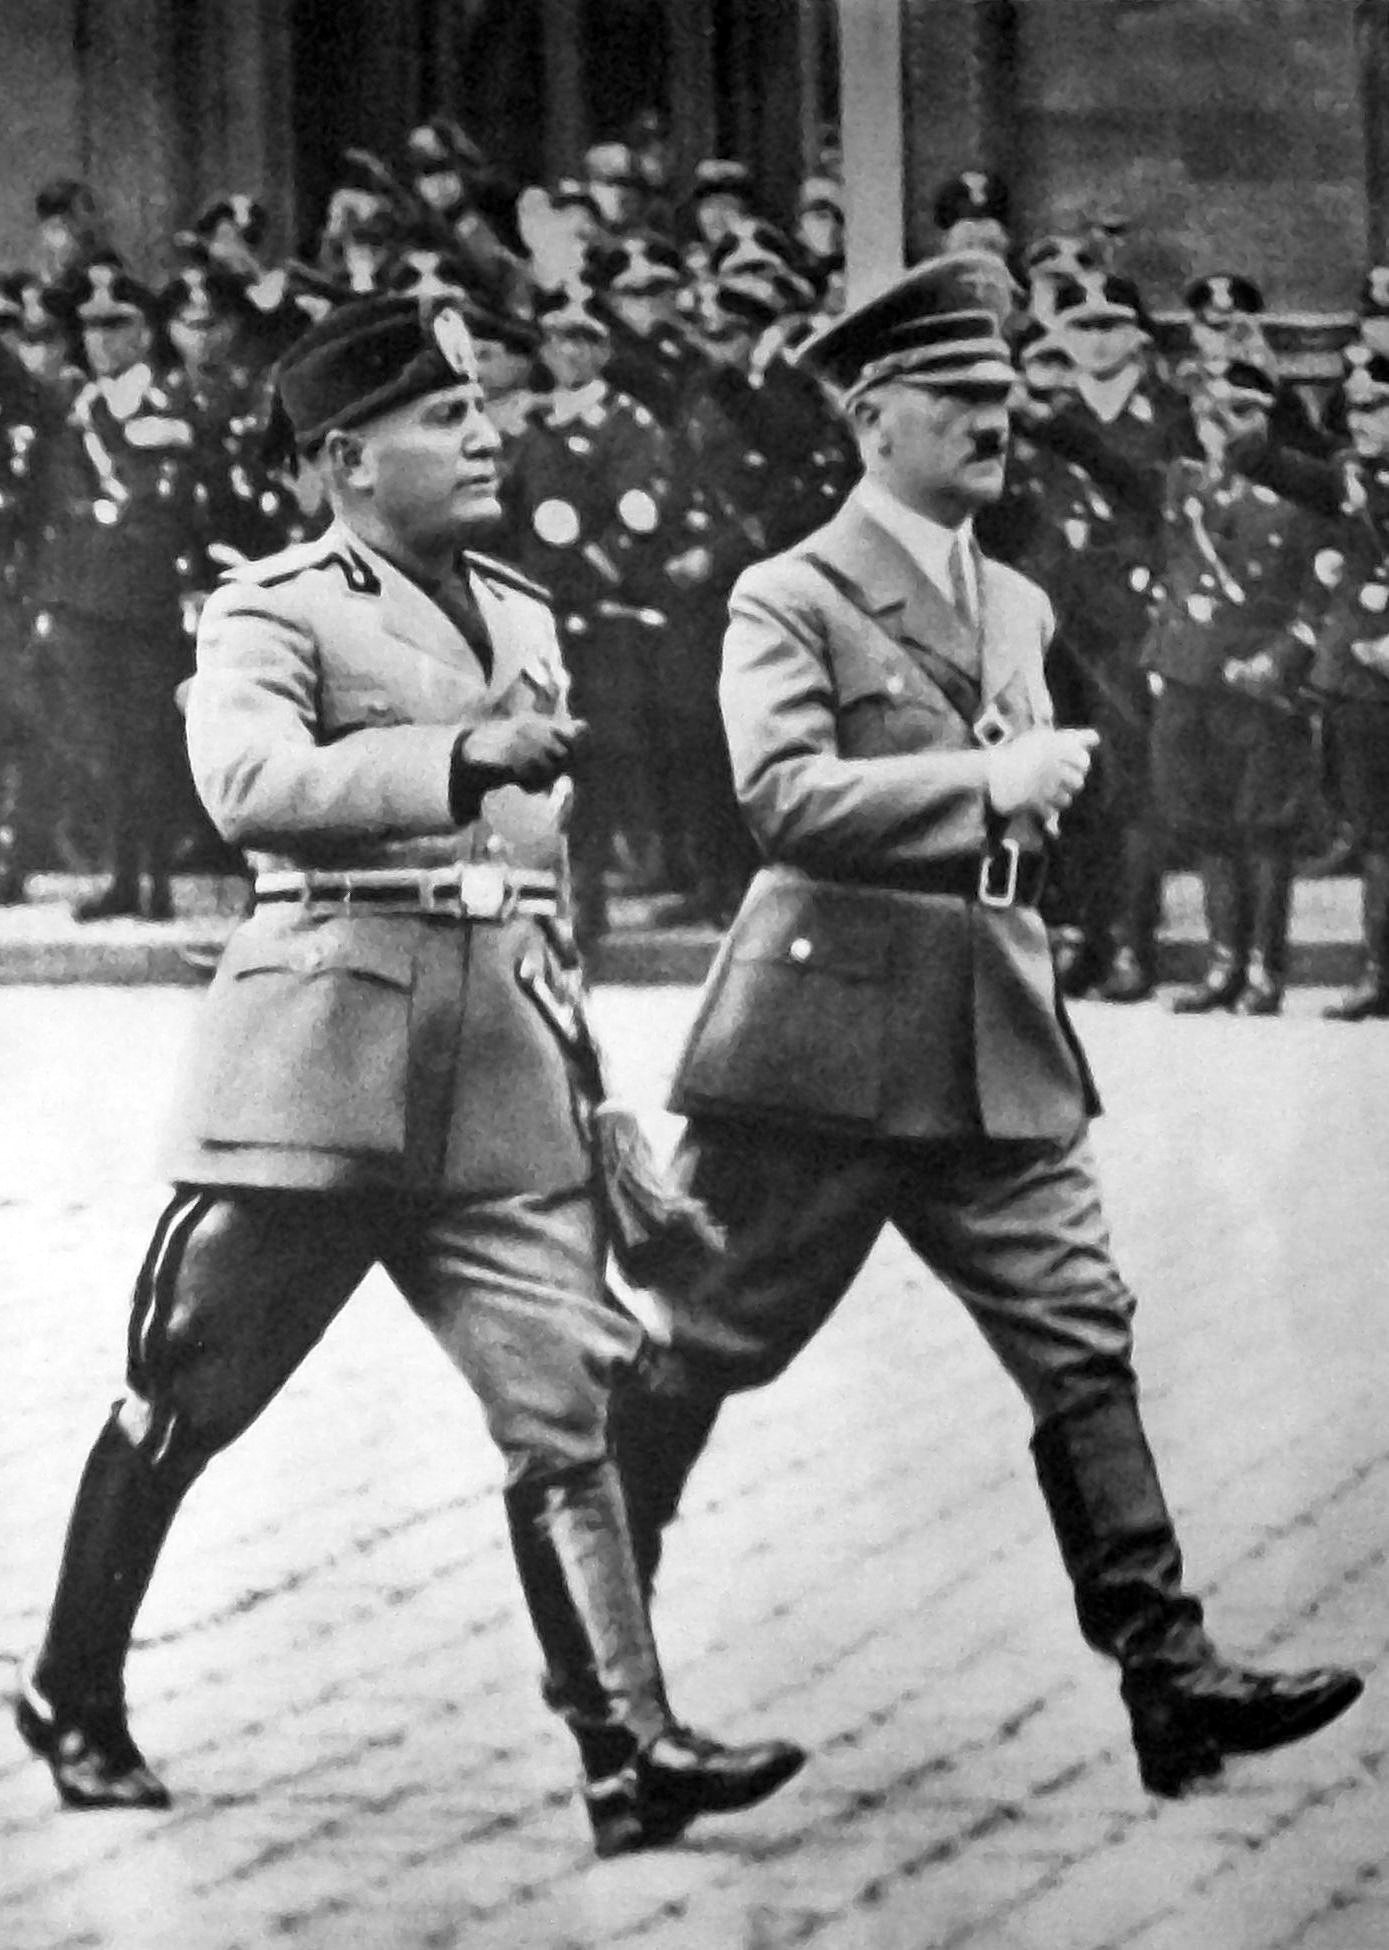 https://upload.wikimedia.org/wikipedia/commons/3/3c/Mussolini_a_Hitler_-_Berl%C3%ADn_1937.jpg